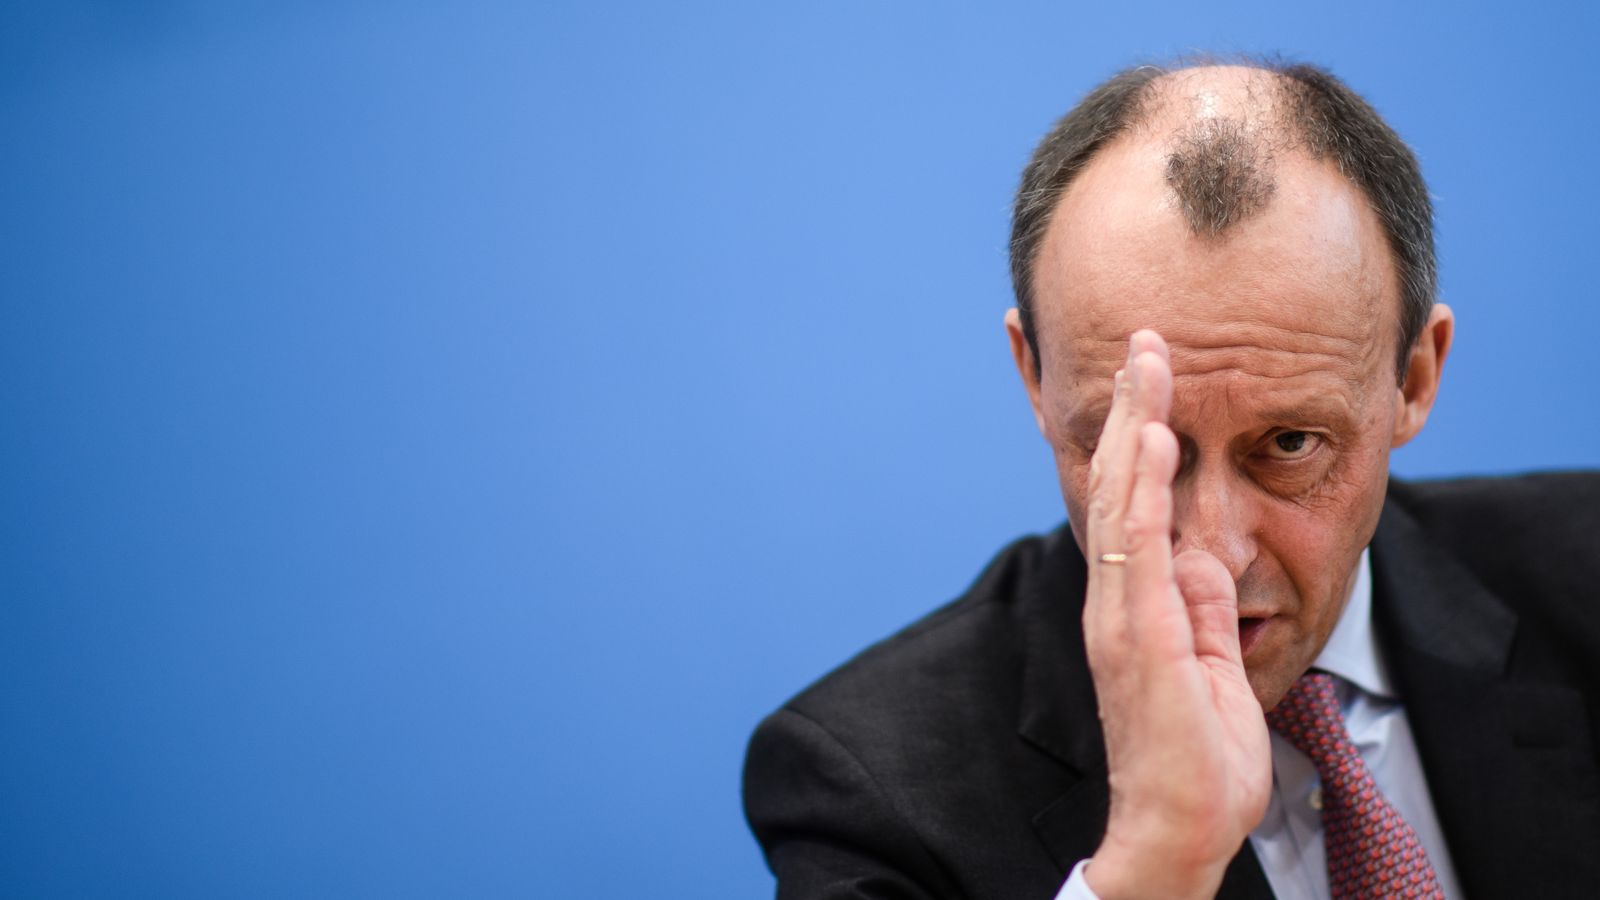 Friedrich Merz announces his candidacy for CDU party leadership, Berlin, Germany - 25 Feb 2020